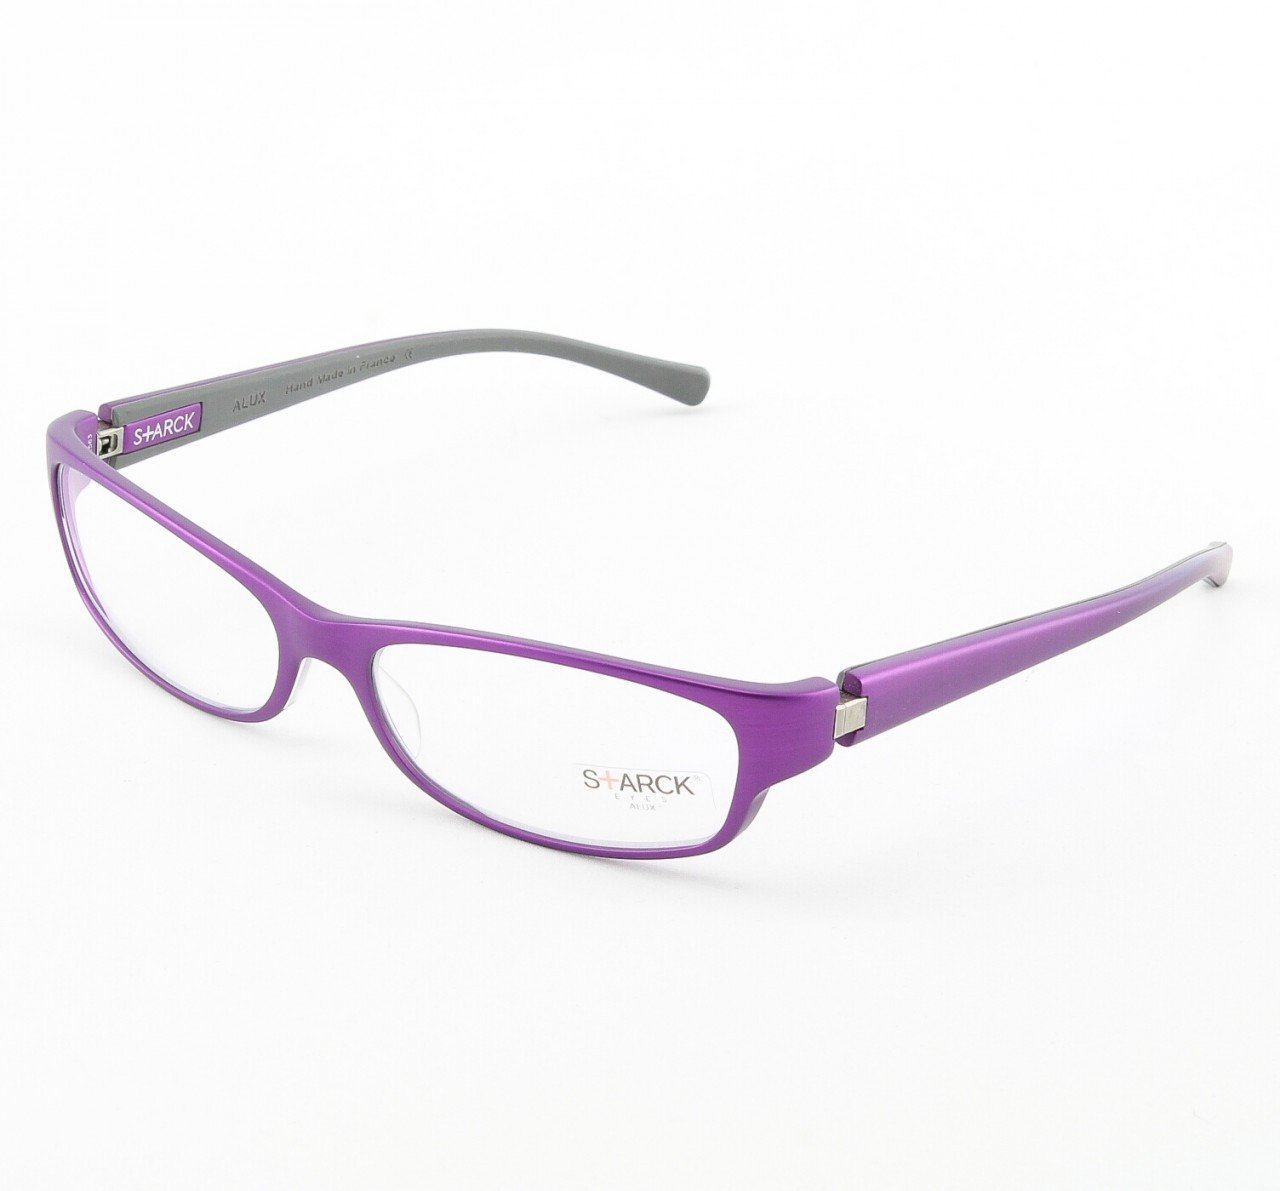 Starck Eyeglasses P0601 Col. 19 Magenta with Clear Lenses